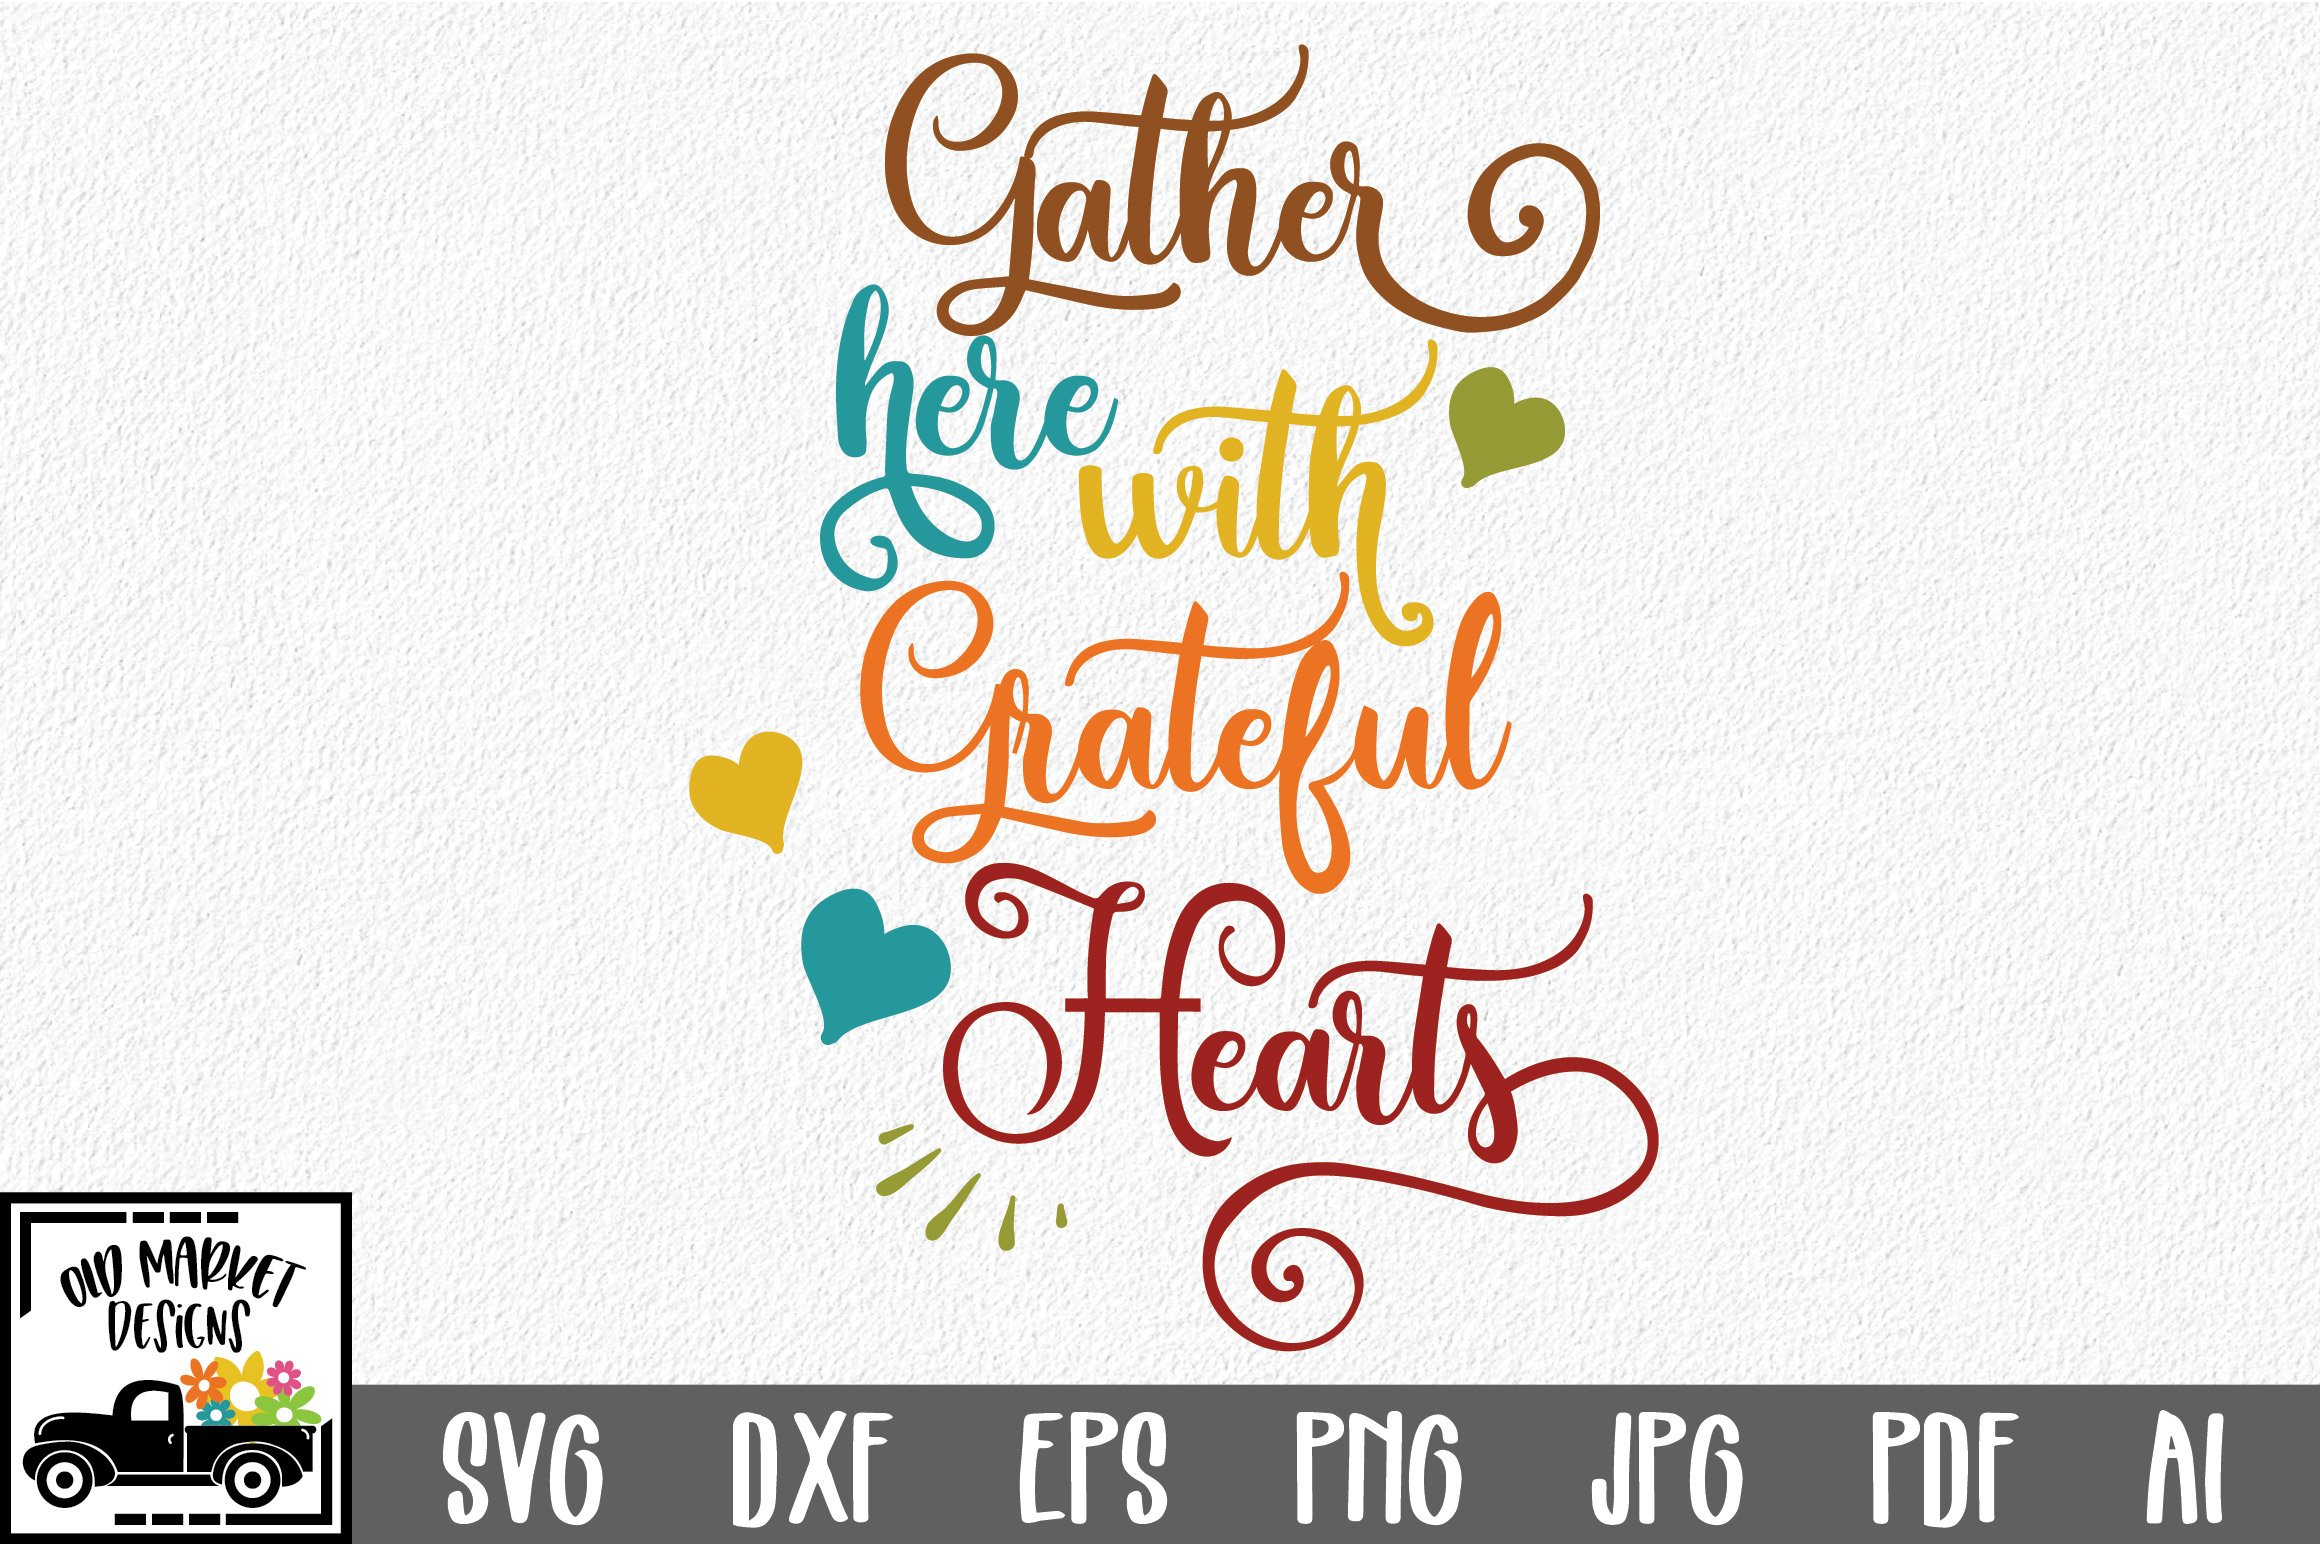 Gather Here With Grateful Hearts Svg Fall Svg Cut File Dxf 138947 Svgs Design Bundles